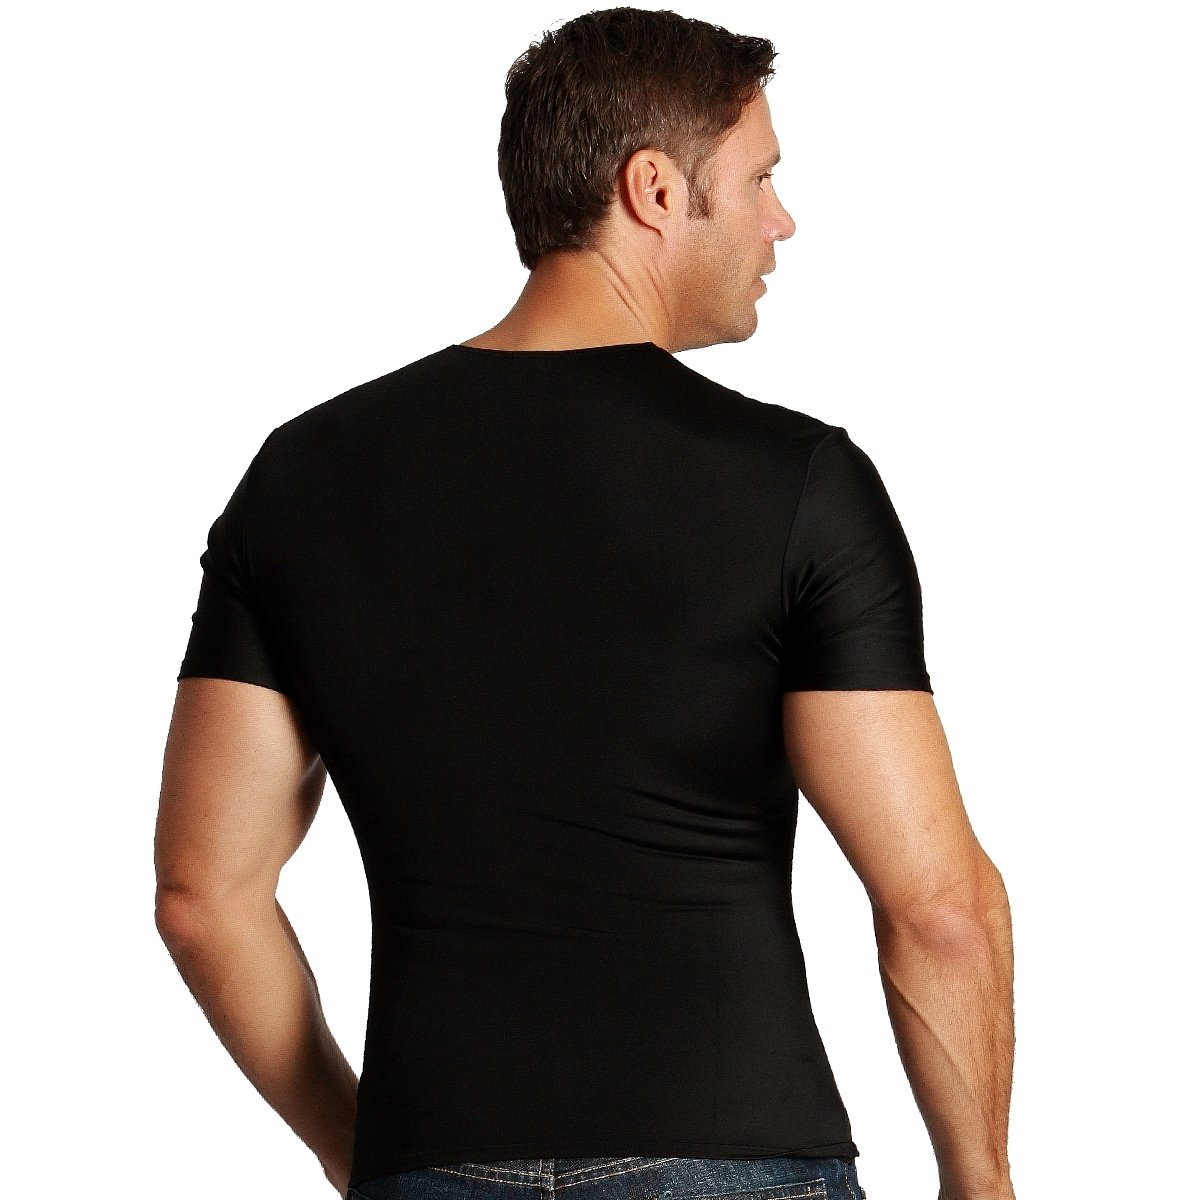 Black Insta Slim Mens Compression Crew-neck T-shirt the Magic is in the Fabric!